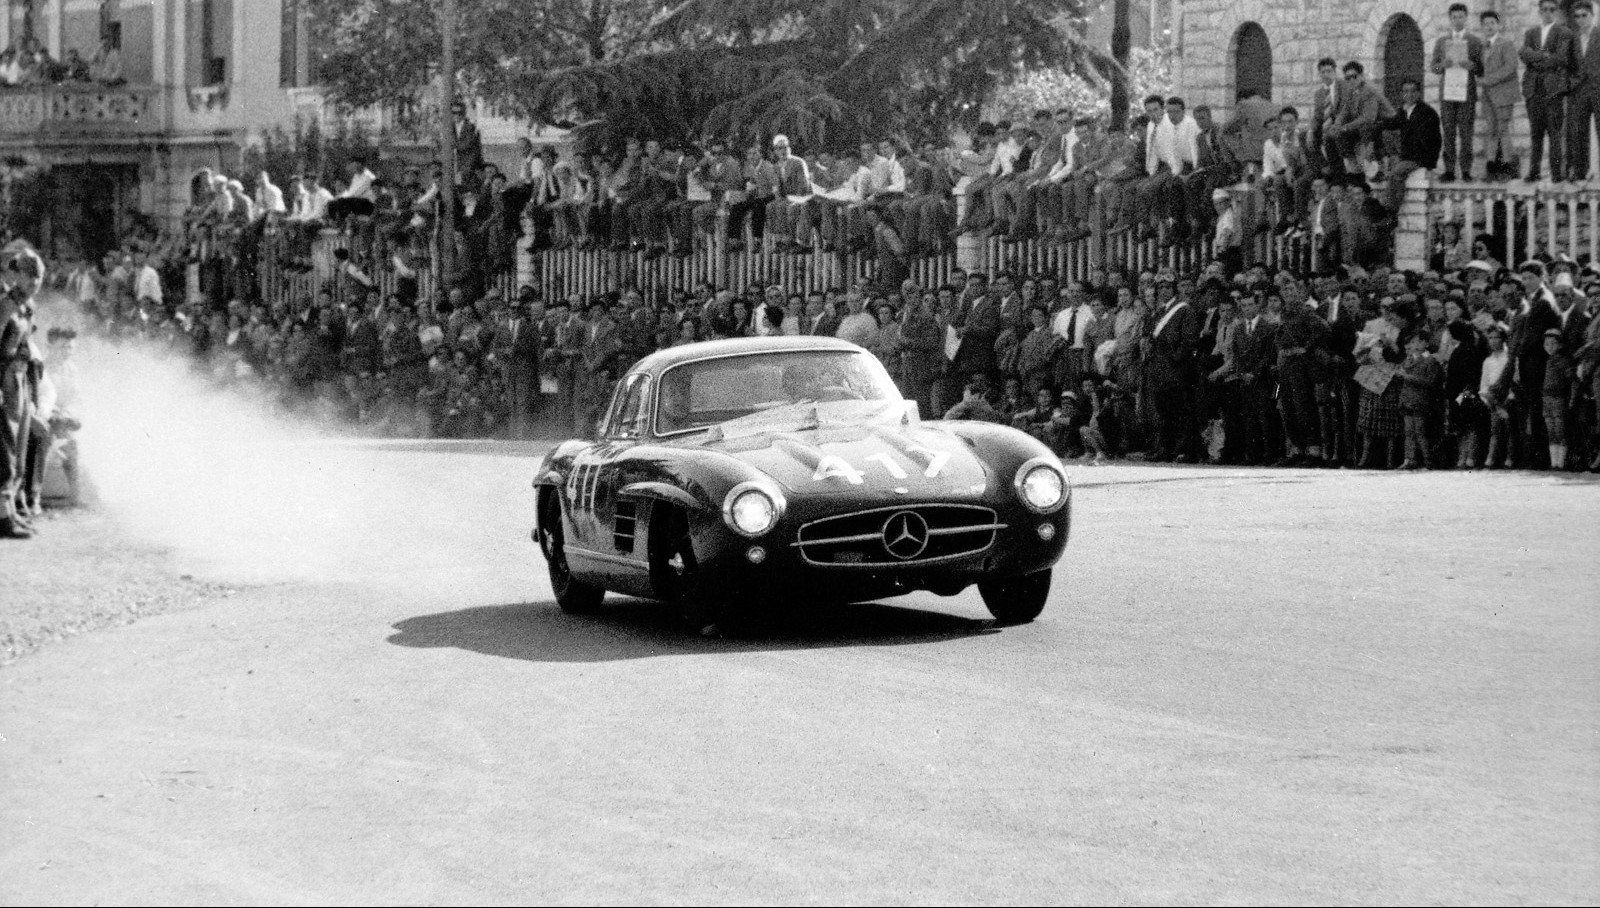 mille miglia - photo #4